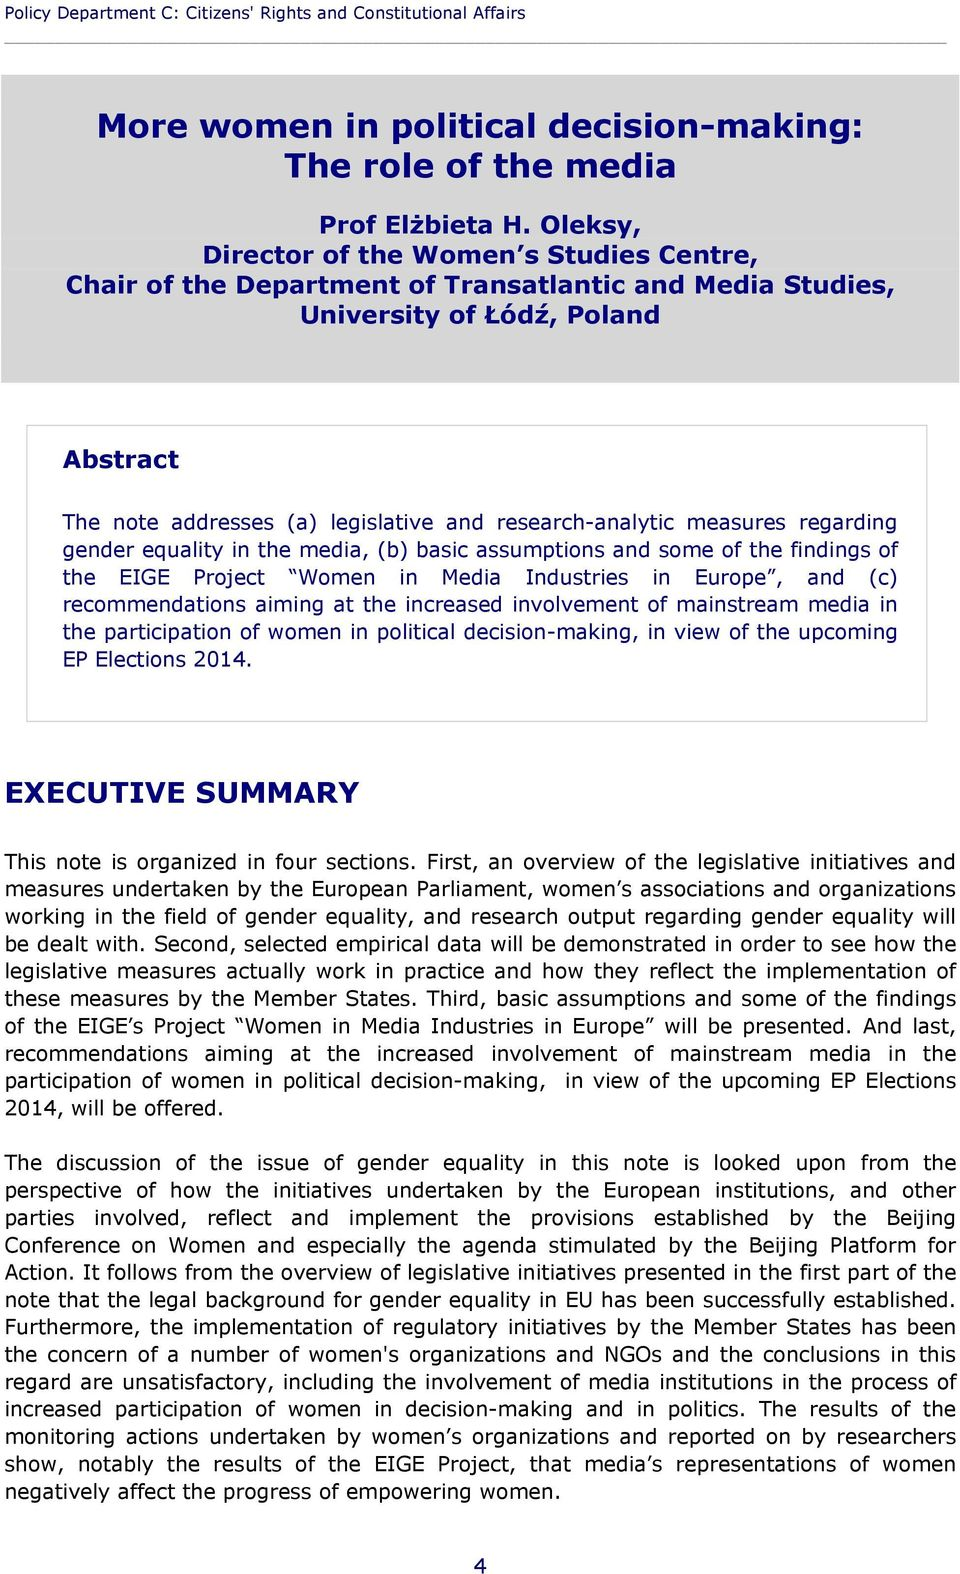 research-analytic measures regarding gender equality in the media, (b) basic assumptions and some of the findings of the EIGE Project Women in Media Industries in Europe, and (c) recommendations